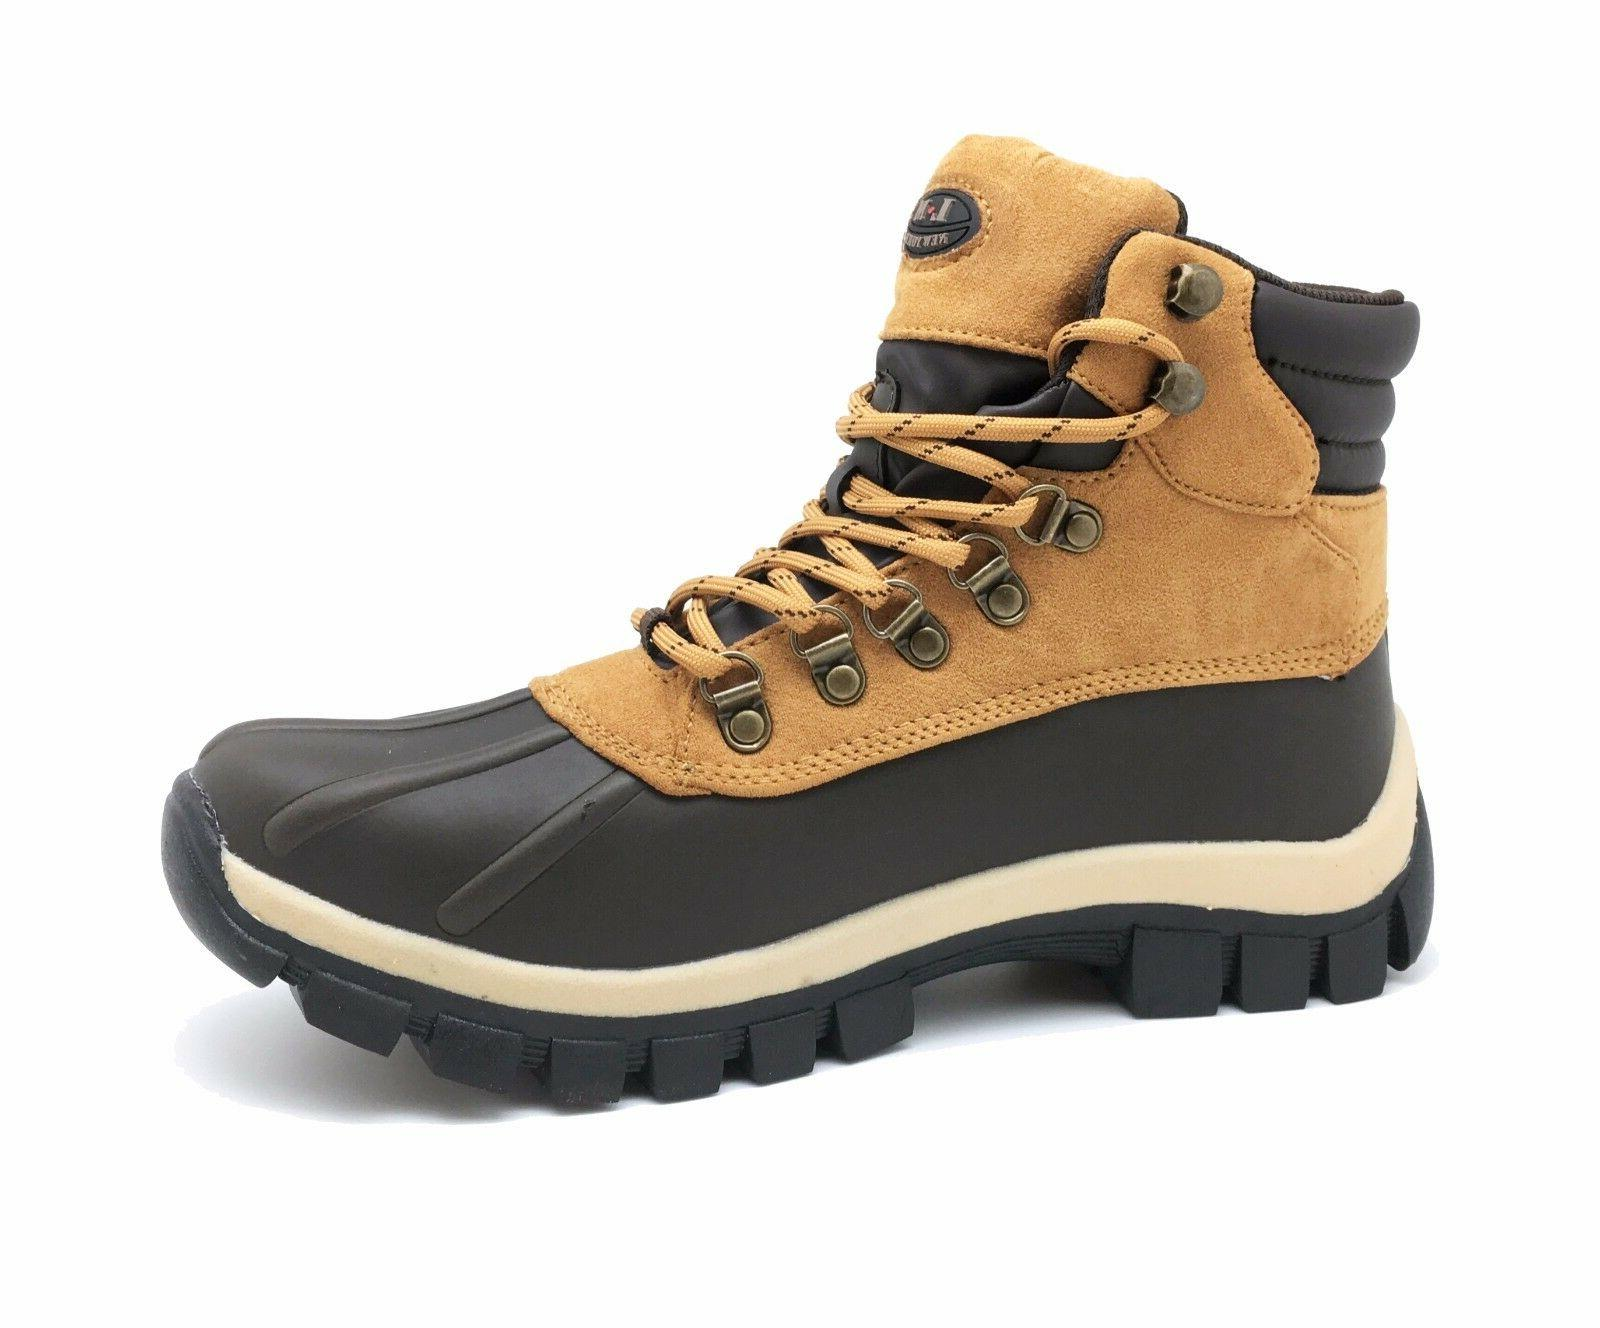 New Winter Snow Men's Work Boots Shoes Leather Lace Up 2017